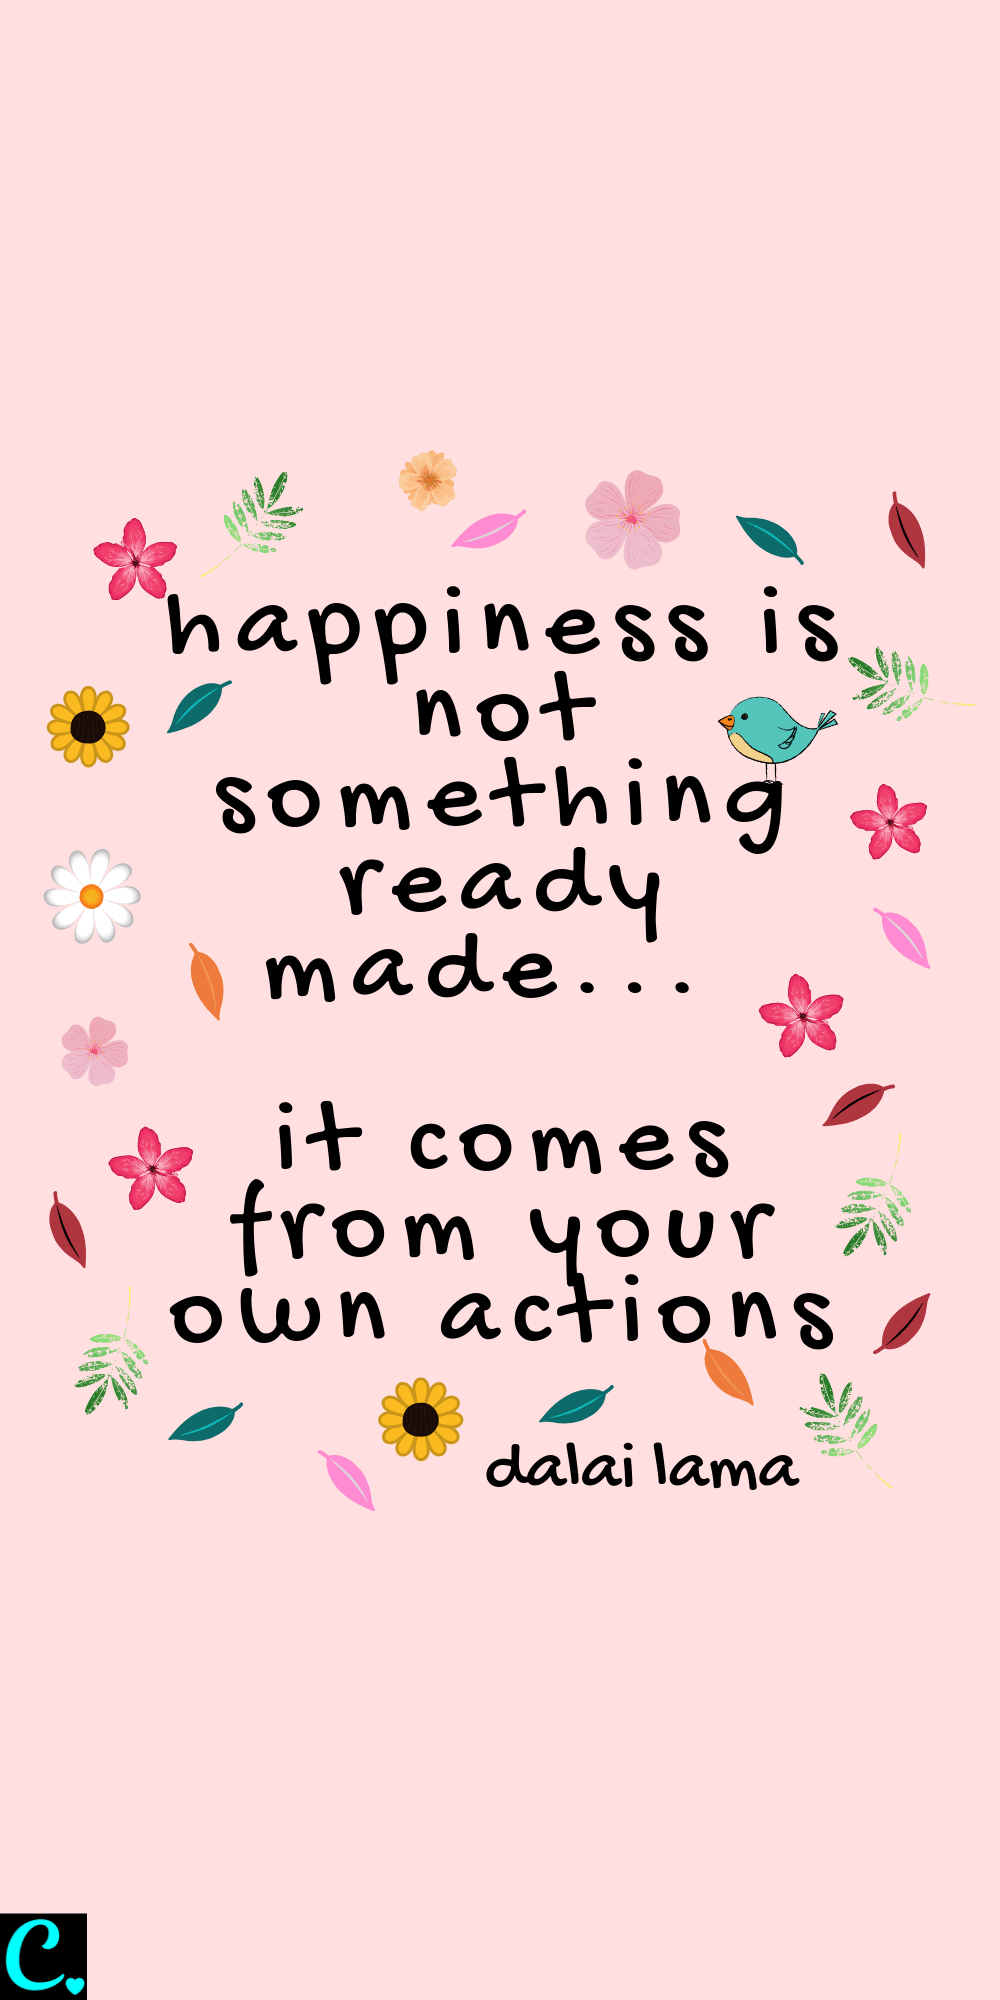 Happiness is not something ready made, it comes from your own actions | Dalai Lama quote | happiness quote | how to be happy | #happinessquote #dalailamaquote #quotesabouthappiness